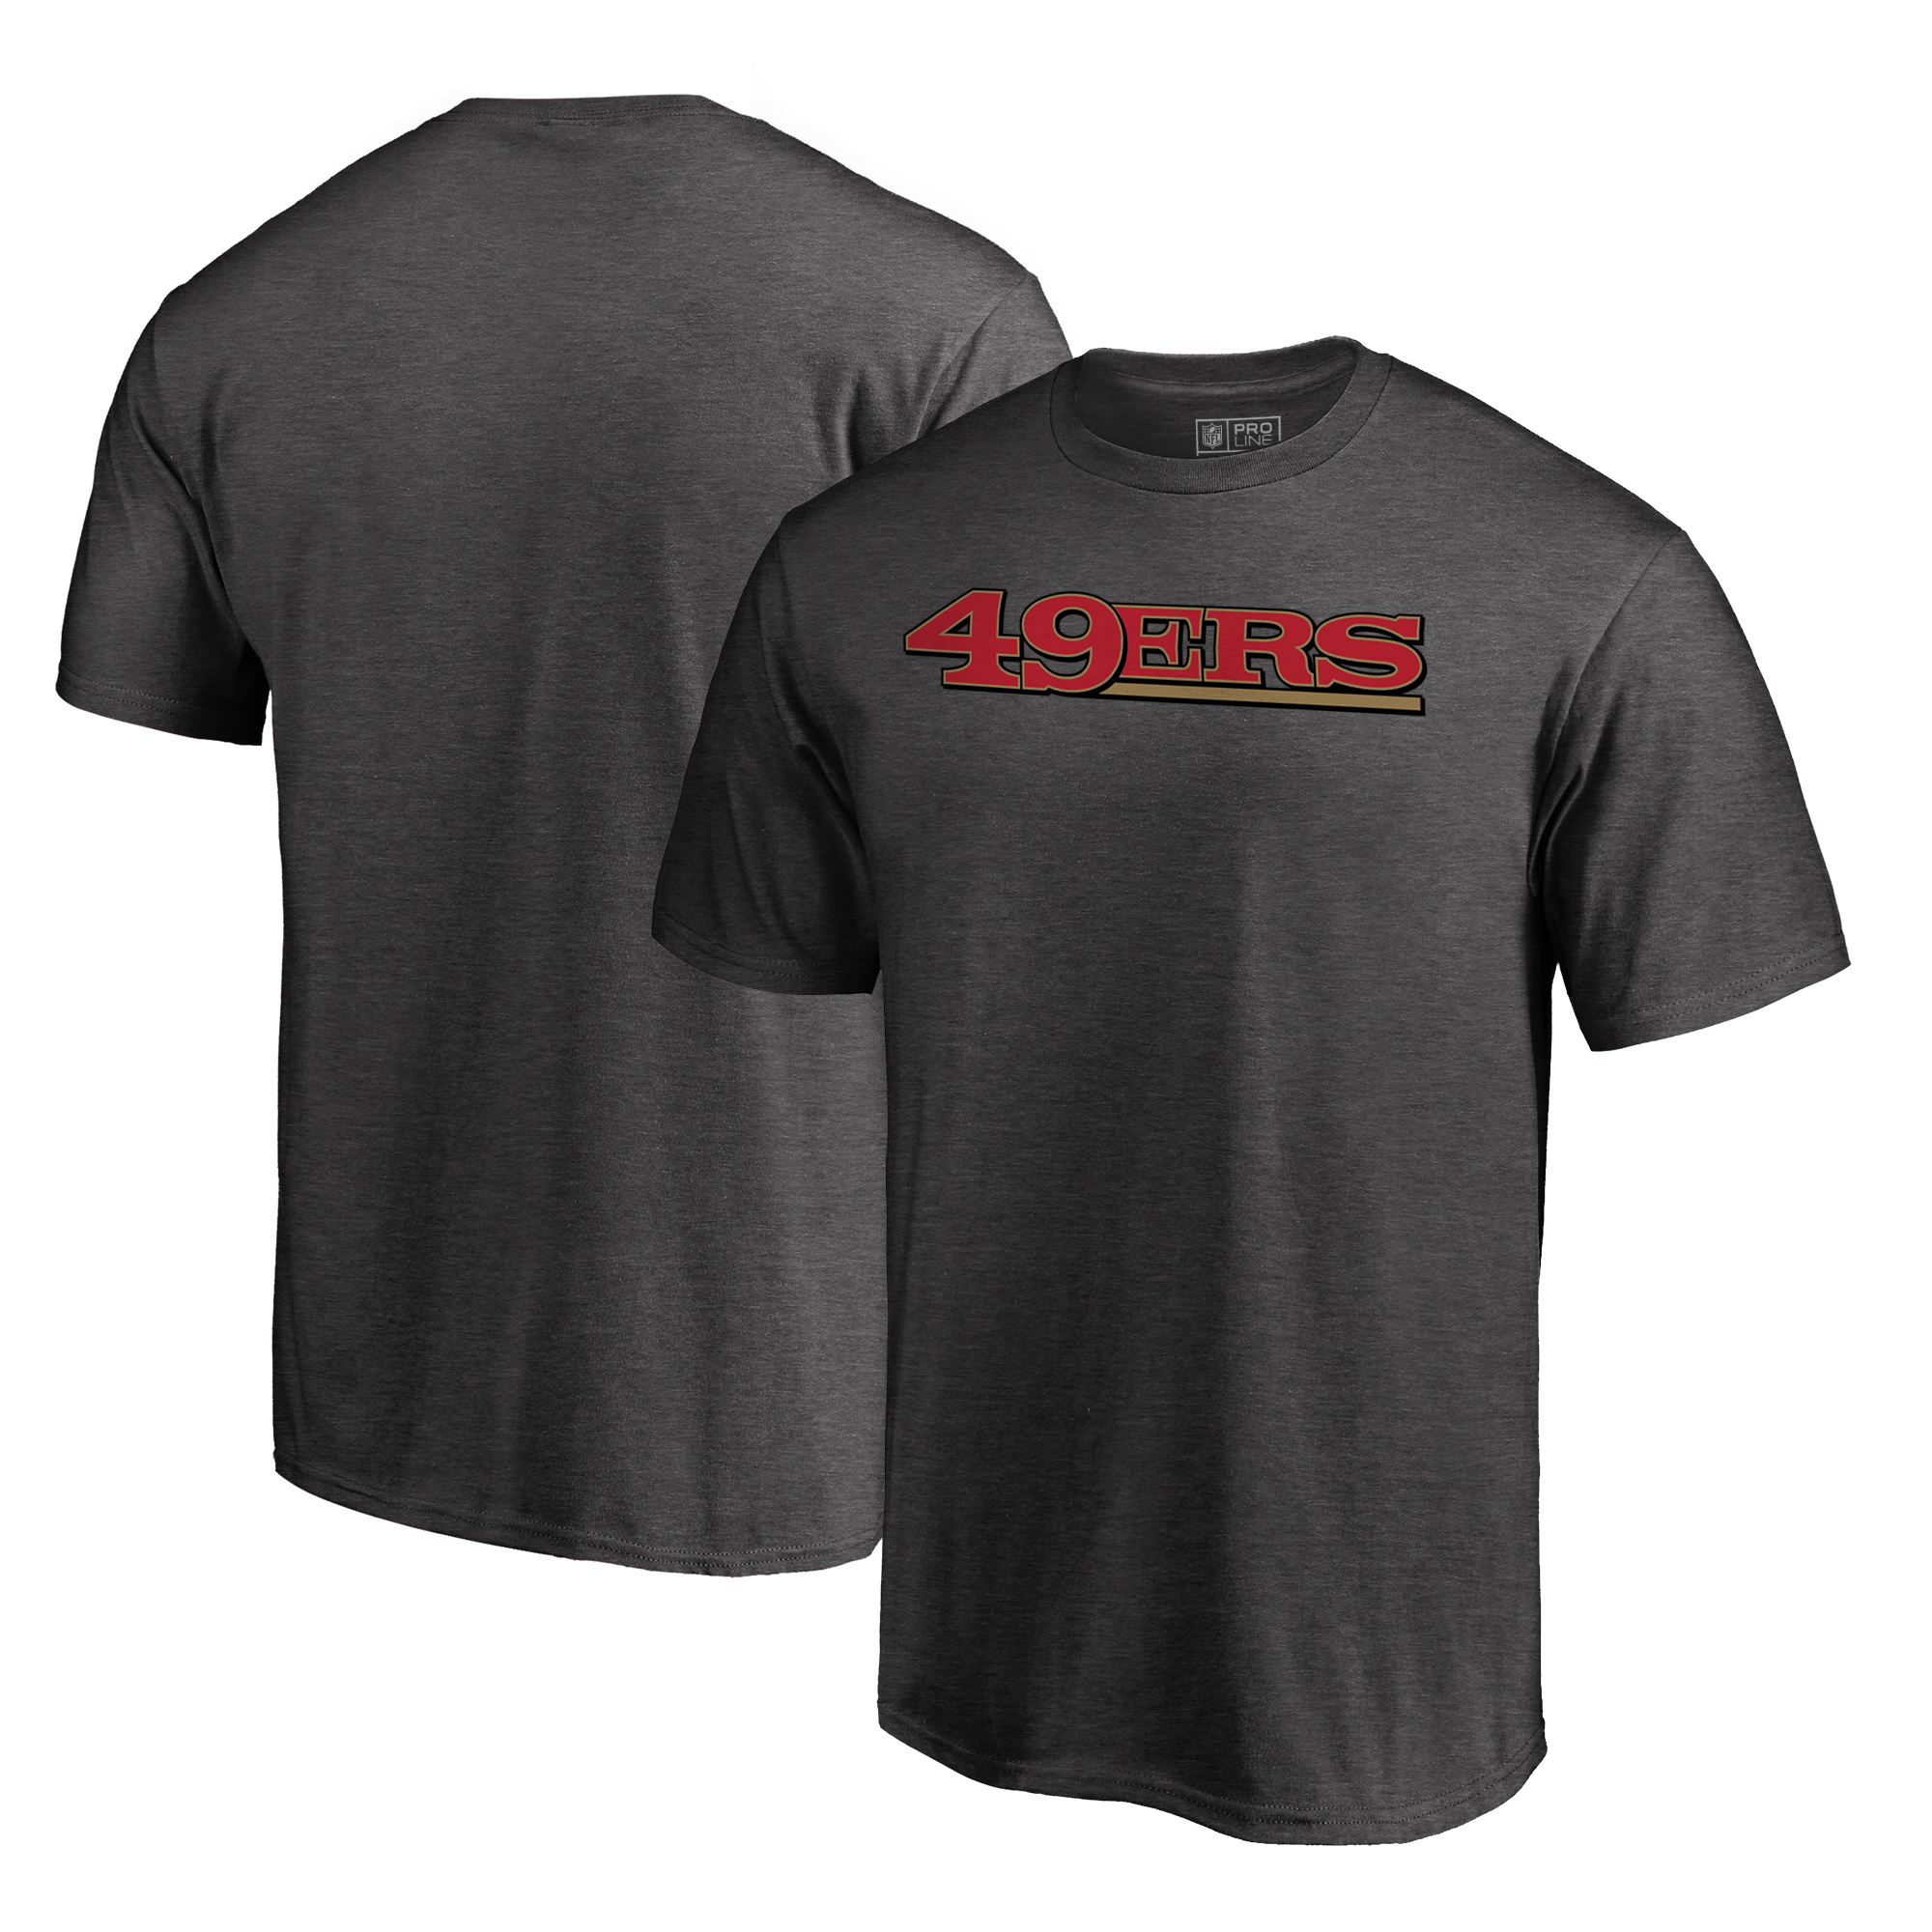 San Francisco 49ers NFL Pro Line by Fanatics Branded Wordmark Big & Tall T-Shirt - Heathered Gray